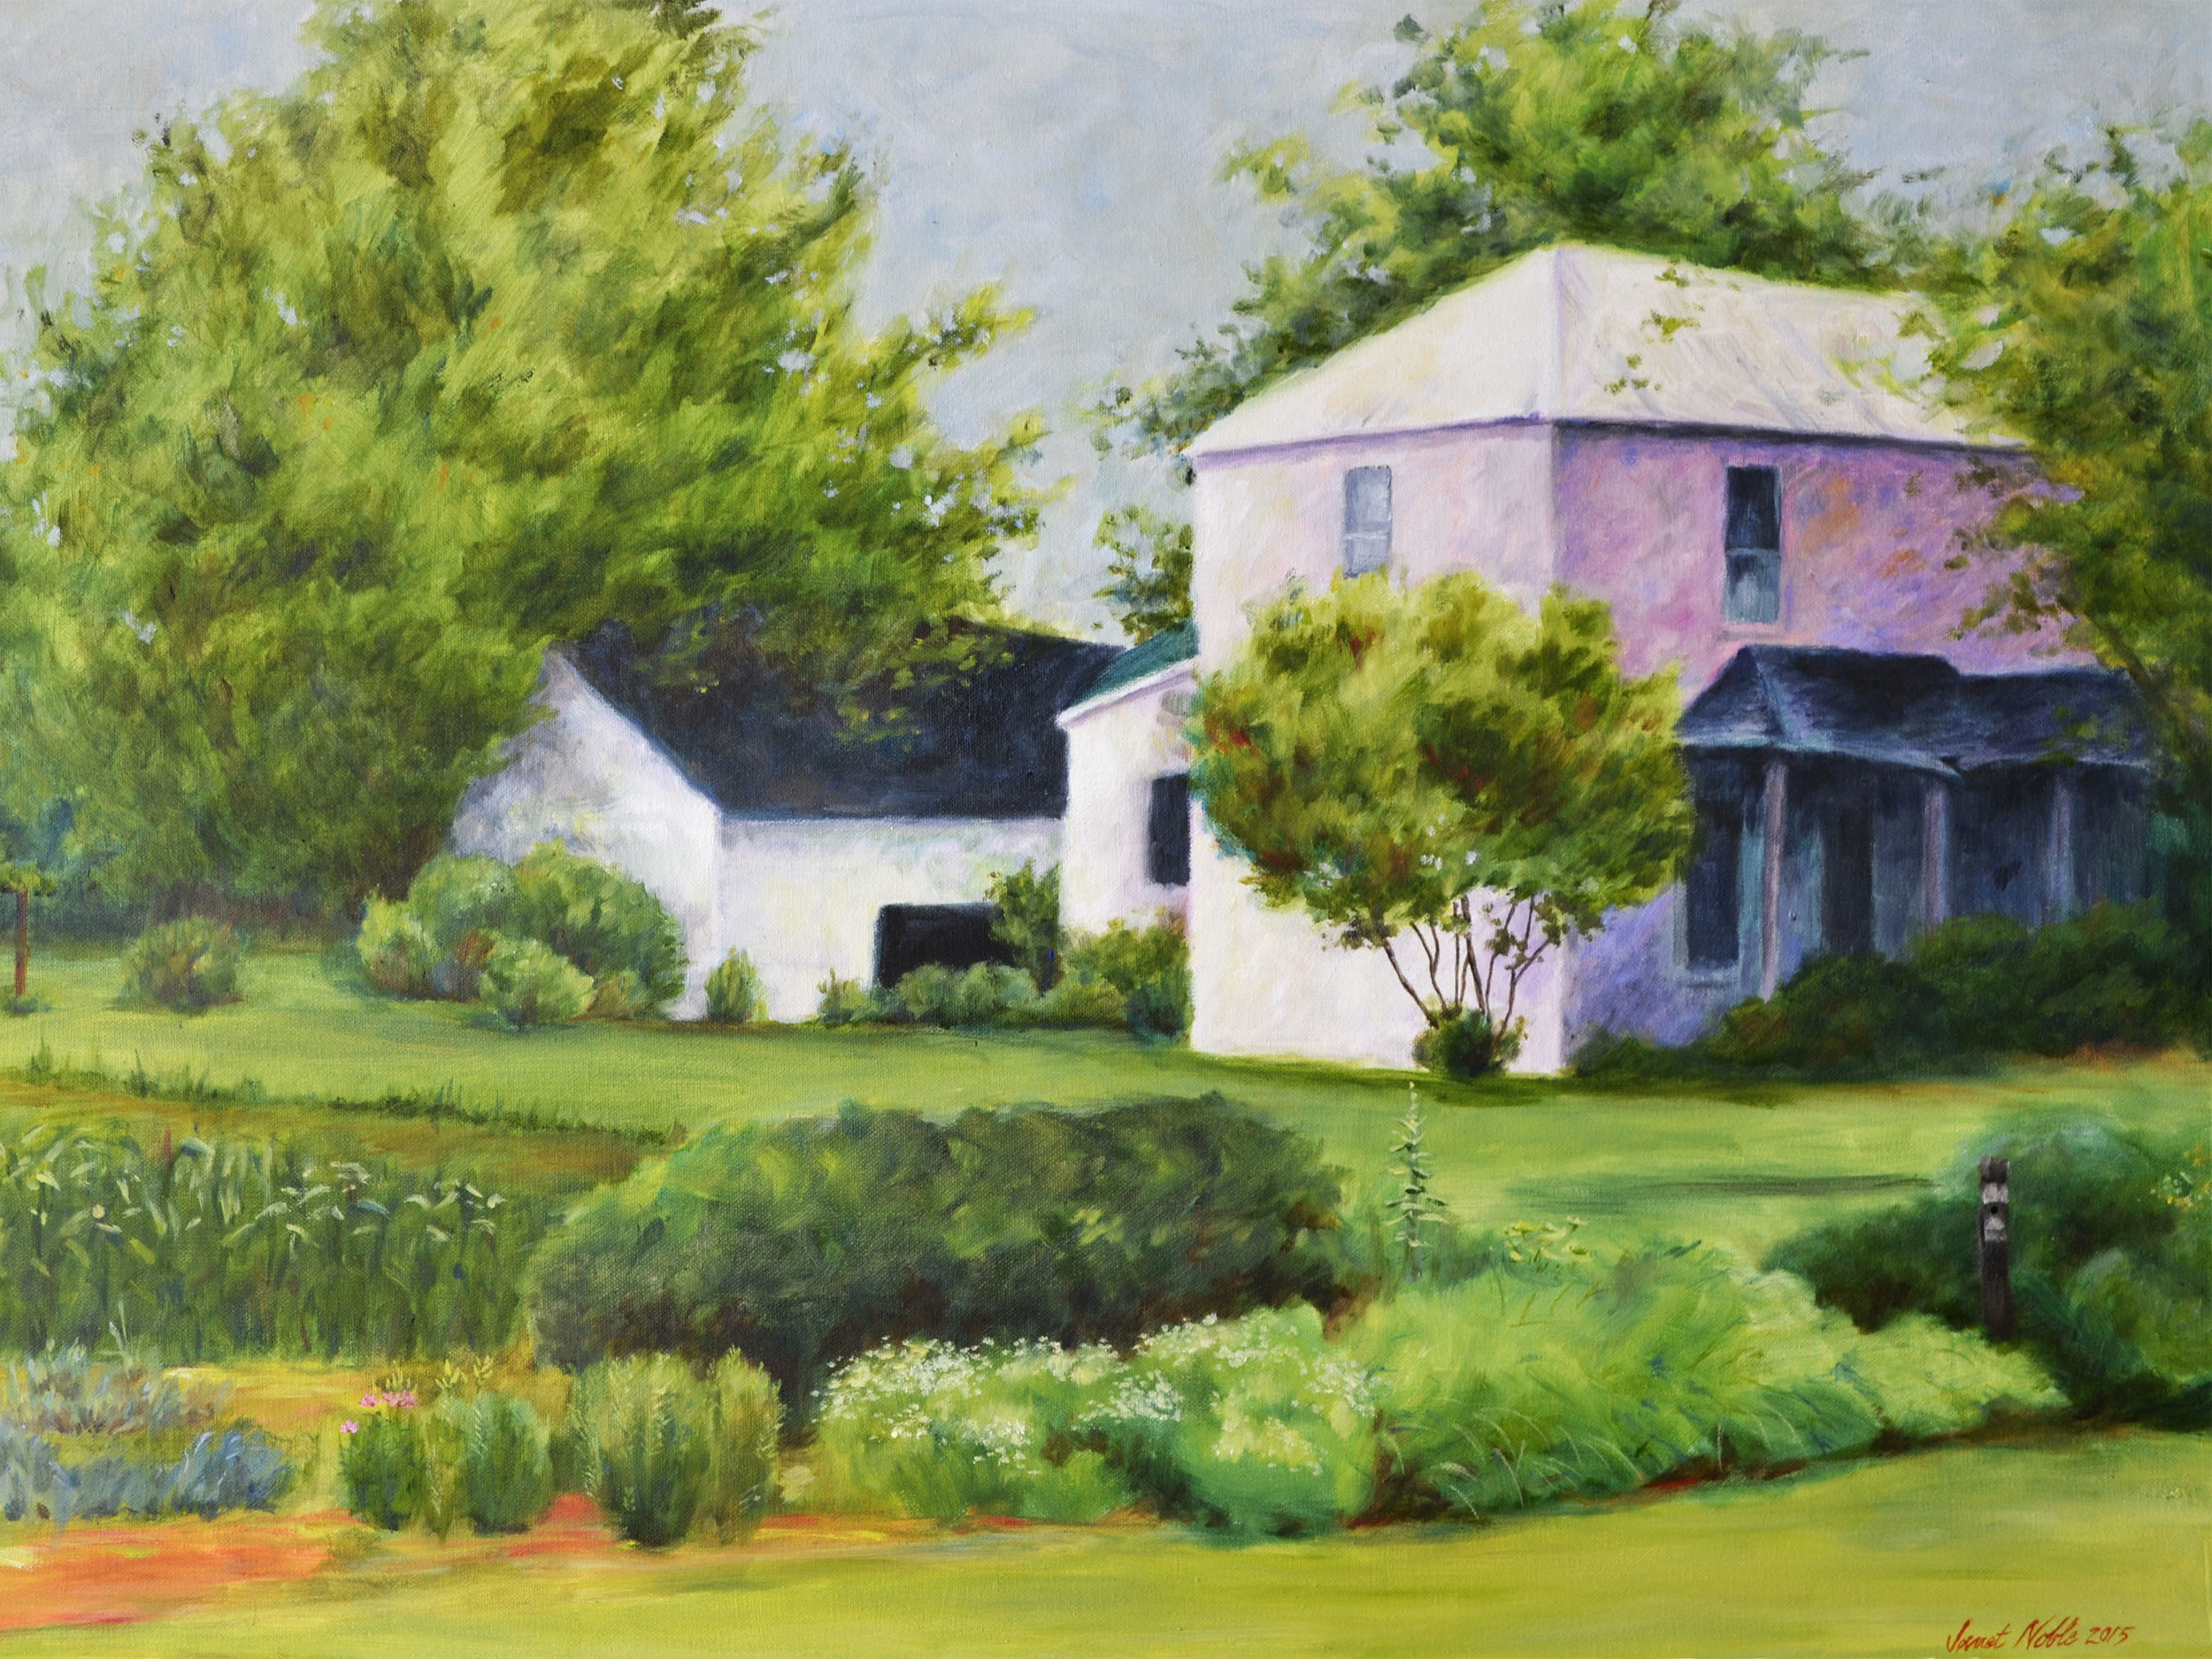 Country Garden   Oil on canvas, 24 x 36, $325.00 Prints, 14 x 11, $25.00 Cards, 5/pack, $8.00